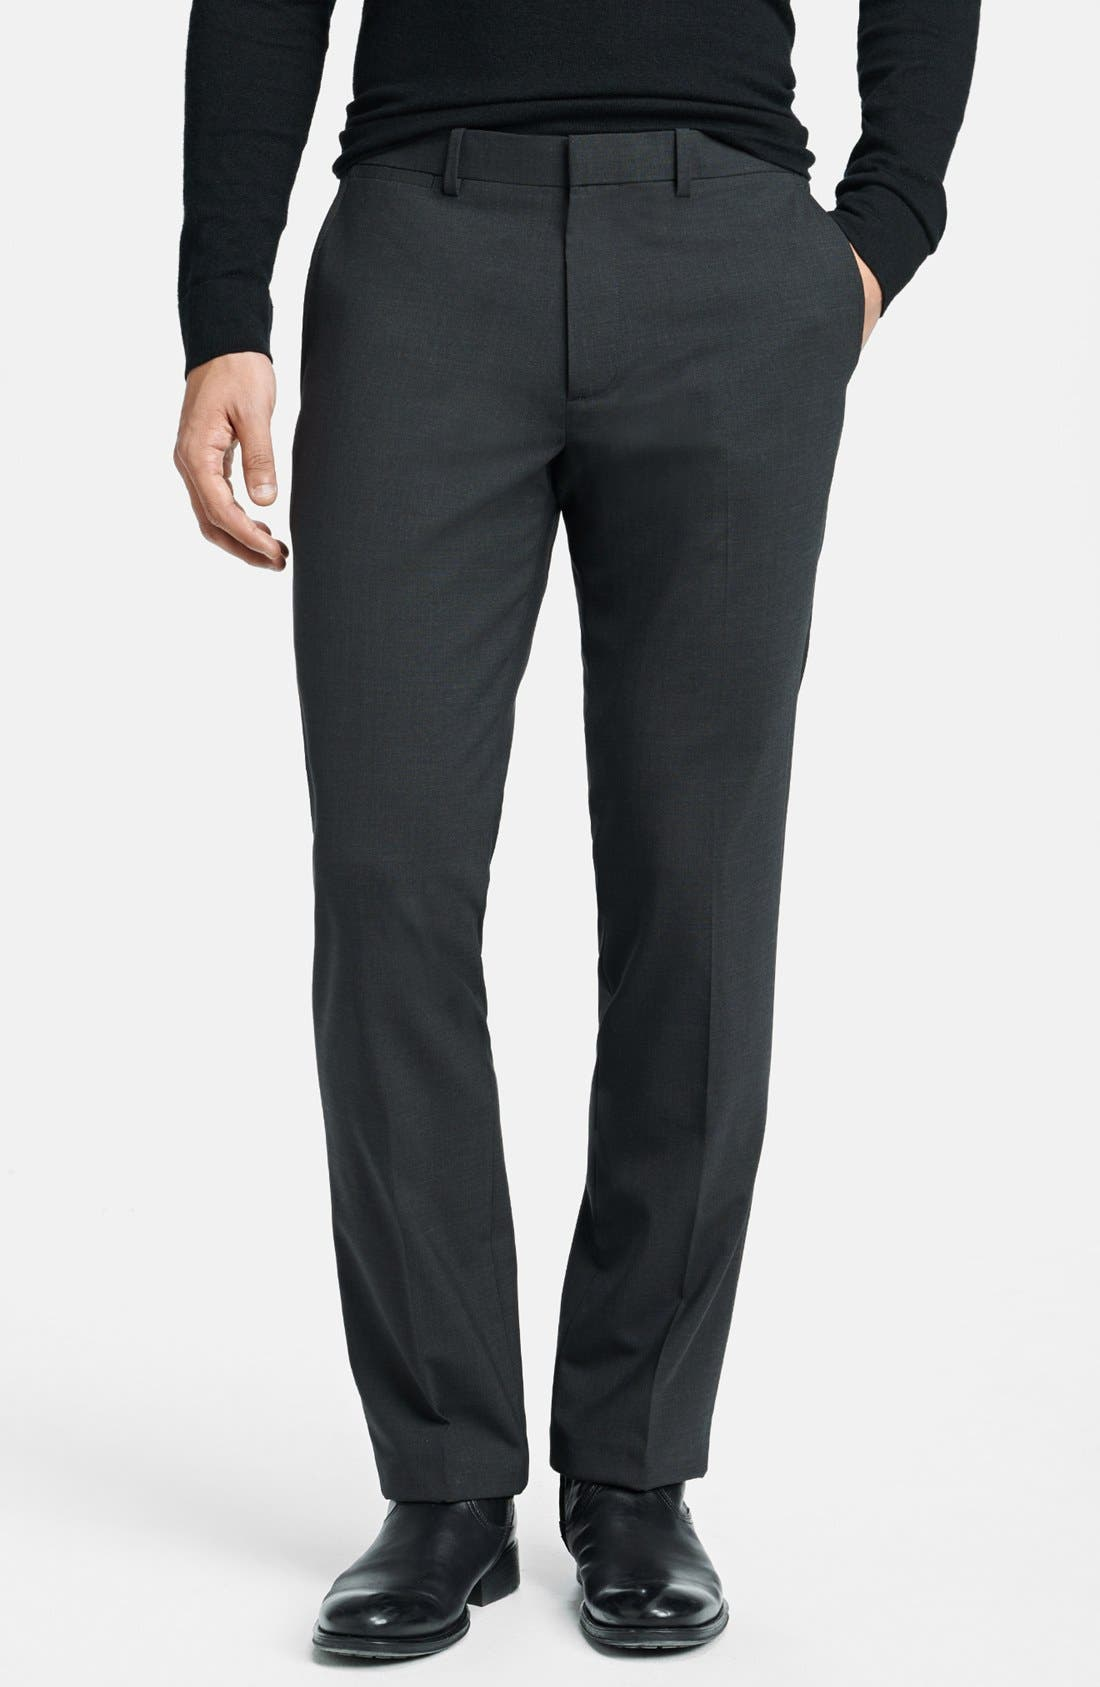 Alternate Image 1 Selected - Theory 'Marlo New Tailor' Slim Fit Pants